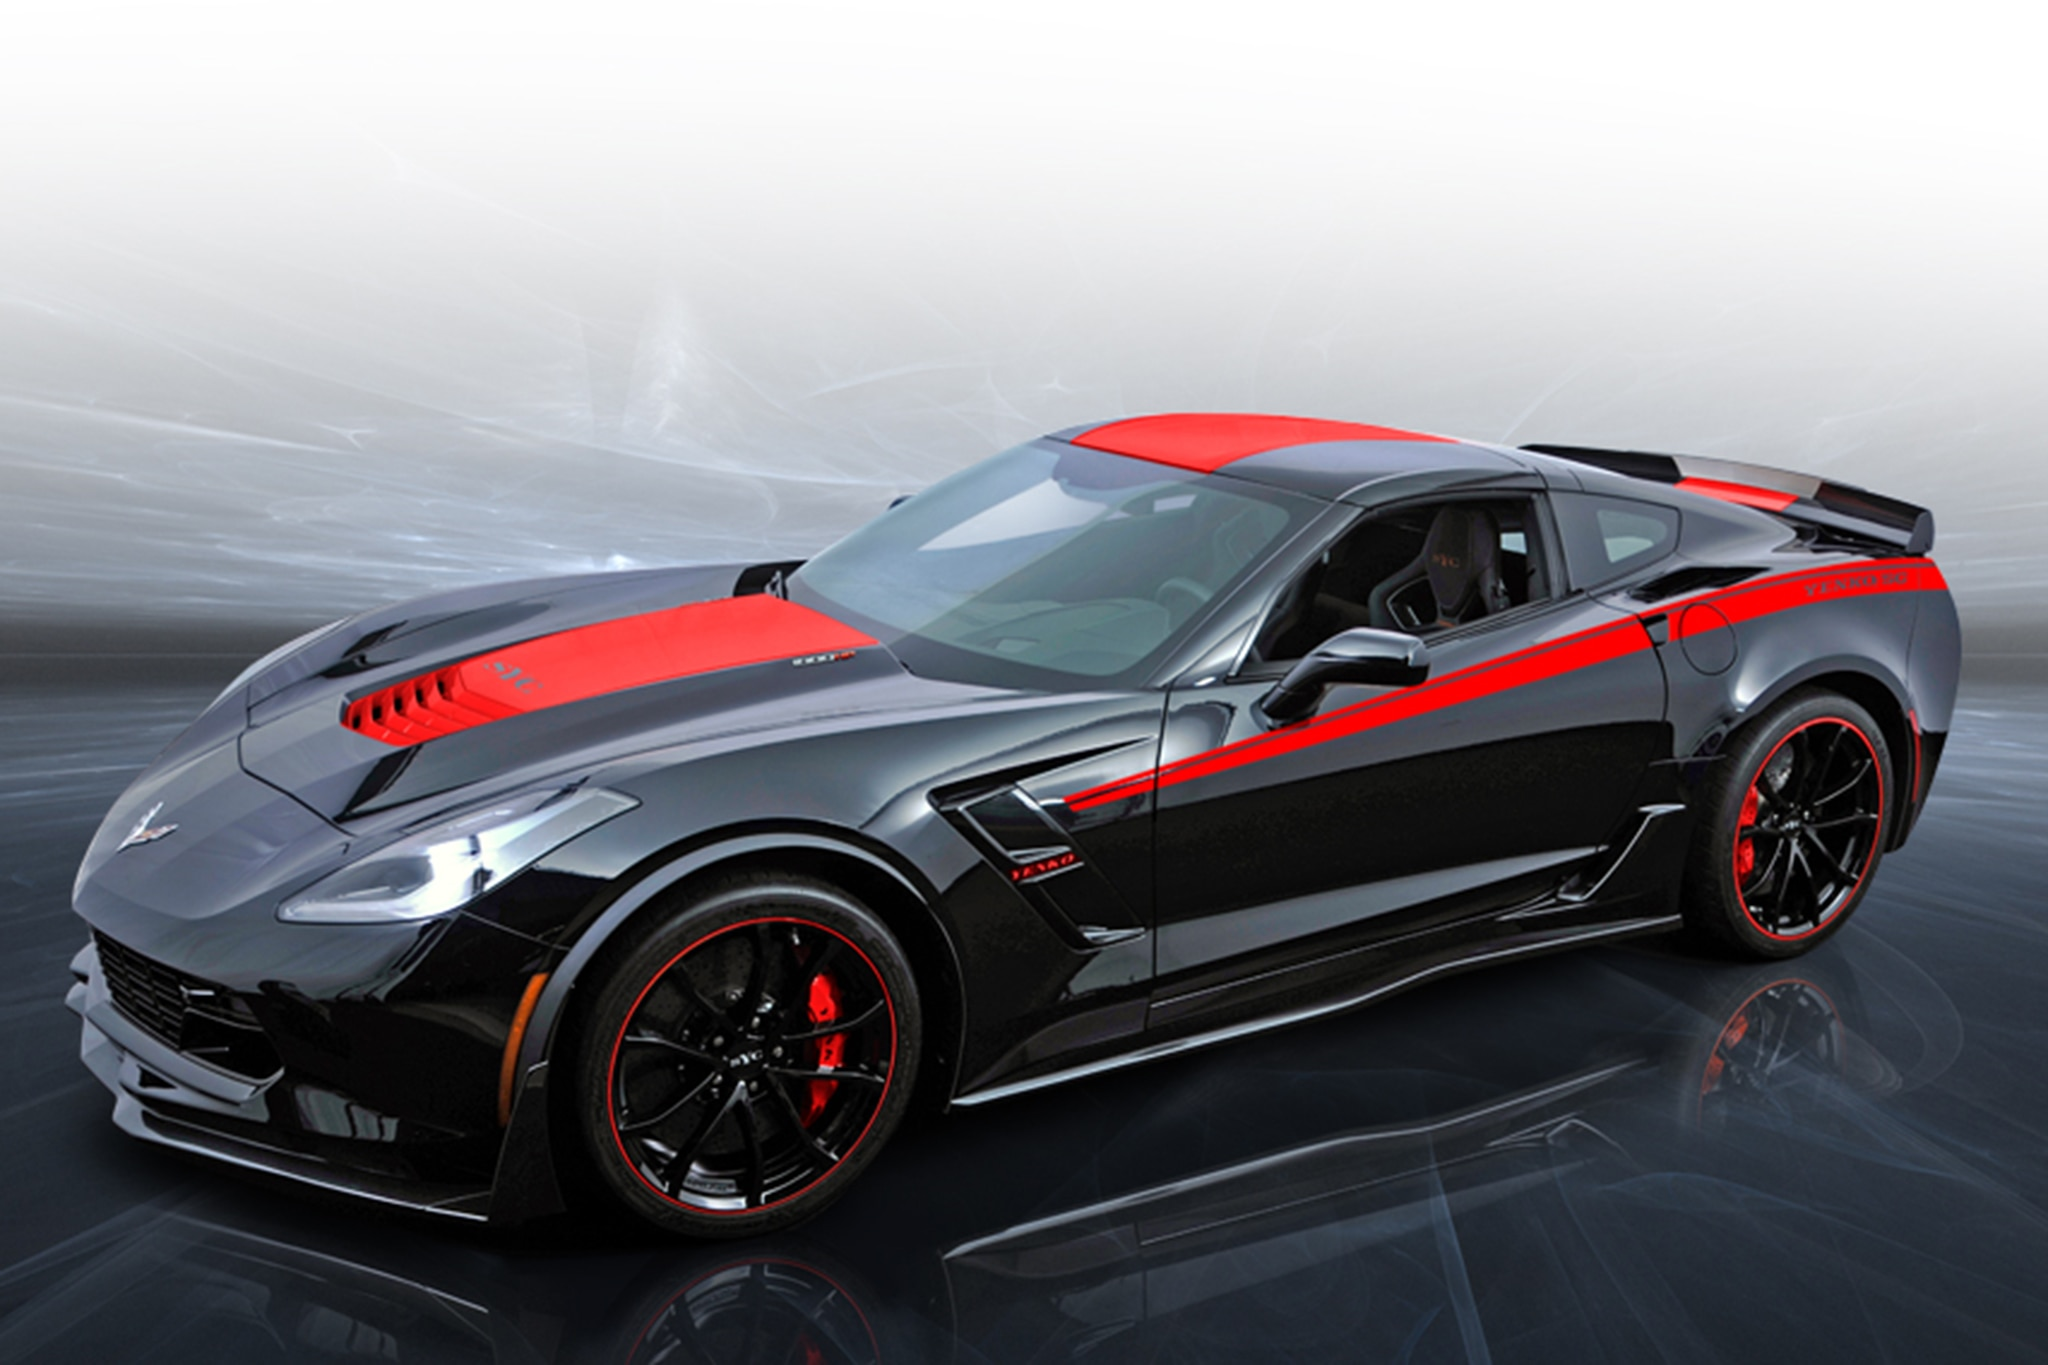 2019 Yenko Sc Stage Ii Corvette With 1000 Hp Starts At